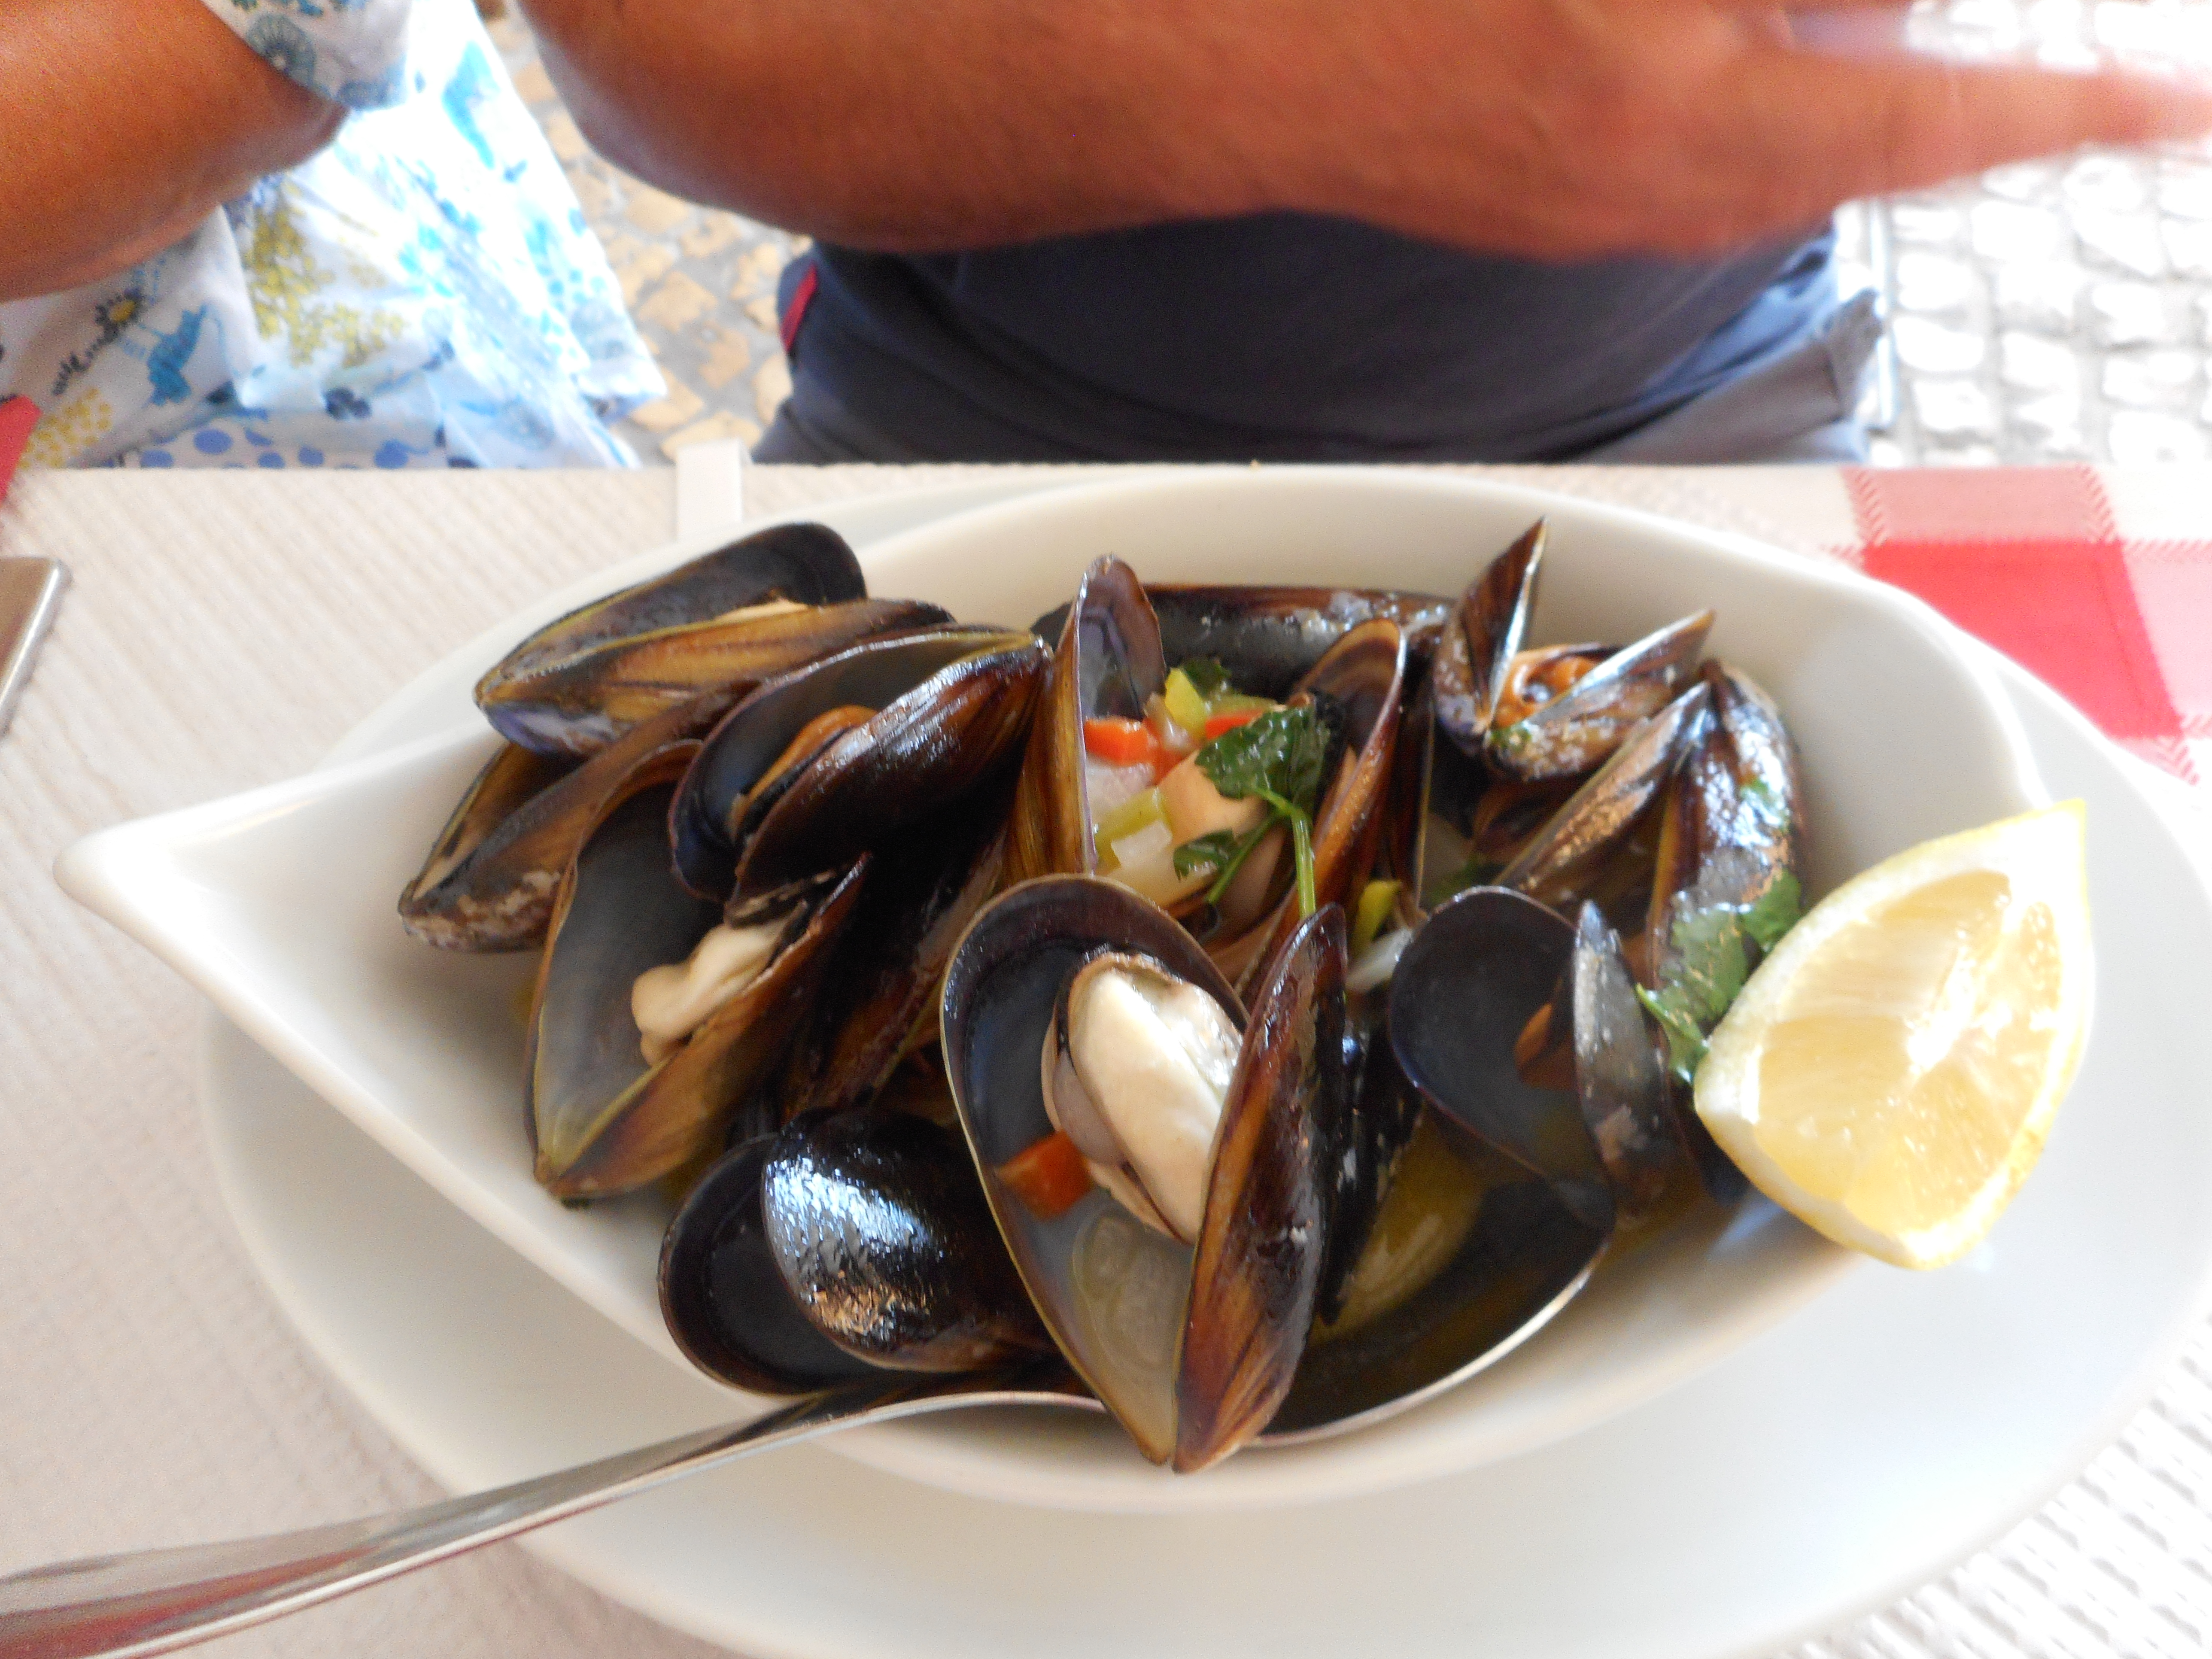 File:Mussels cooked in garlic and wine, Alvor 28 September ...